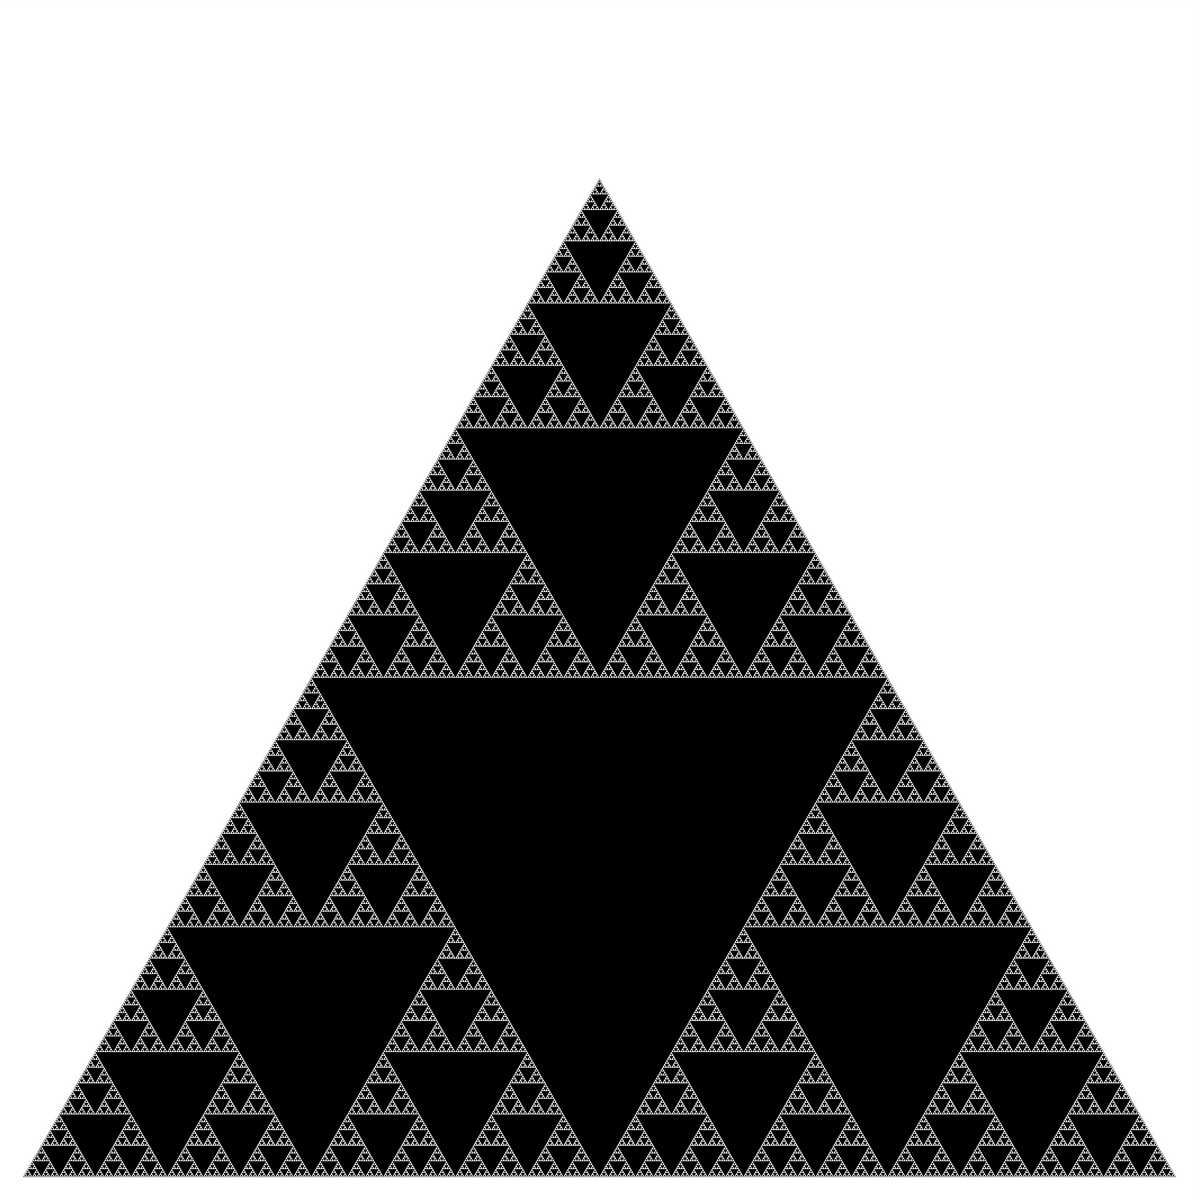 Clay Triangle Drawing Recursive Graphics Assignment